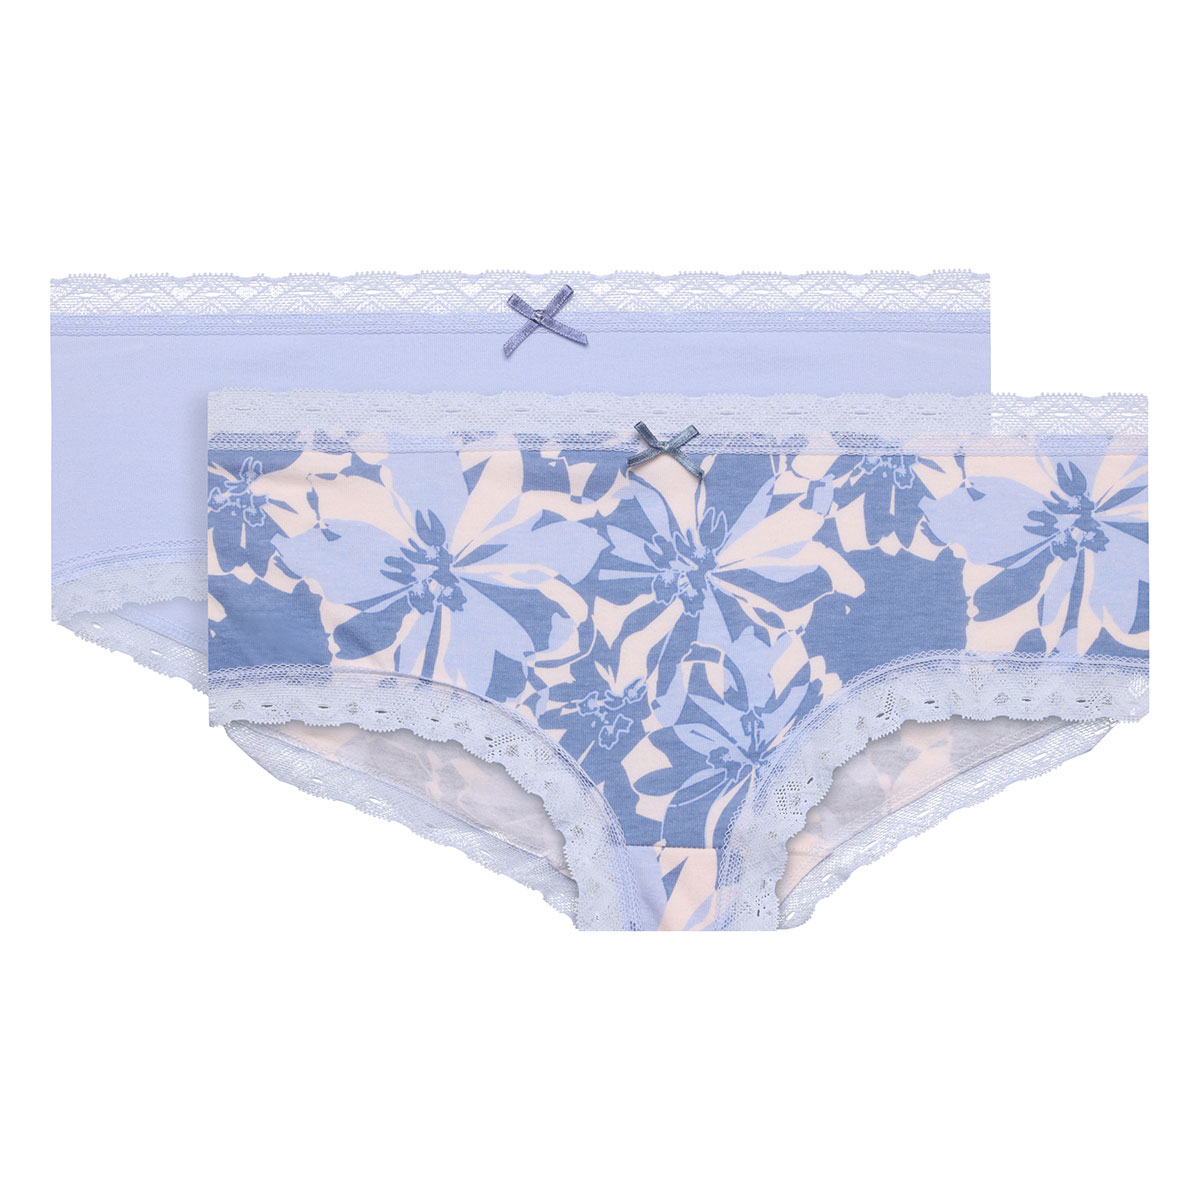 2 Pack blue floral shorts - Basic Cotton Fancy-PLAYTEX